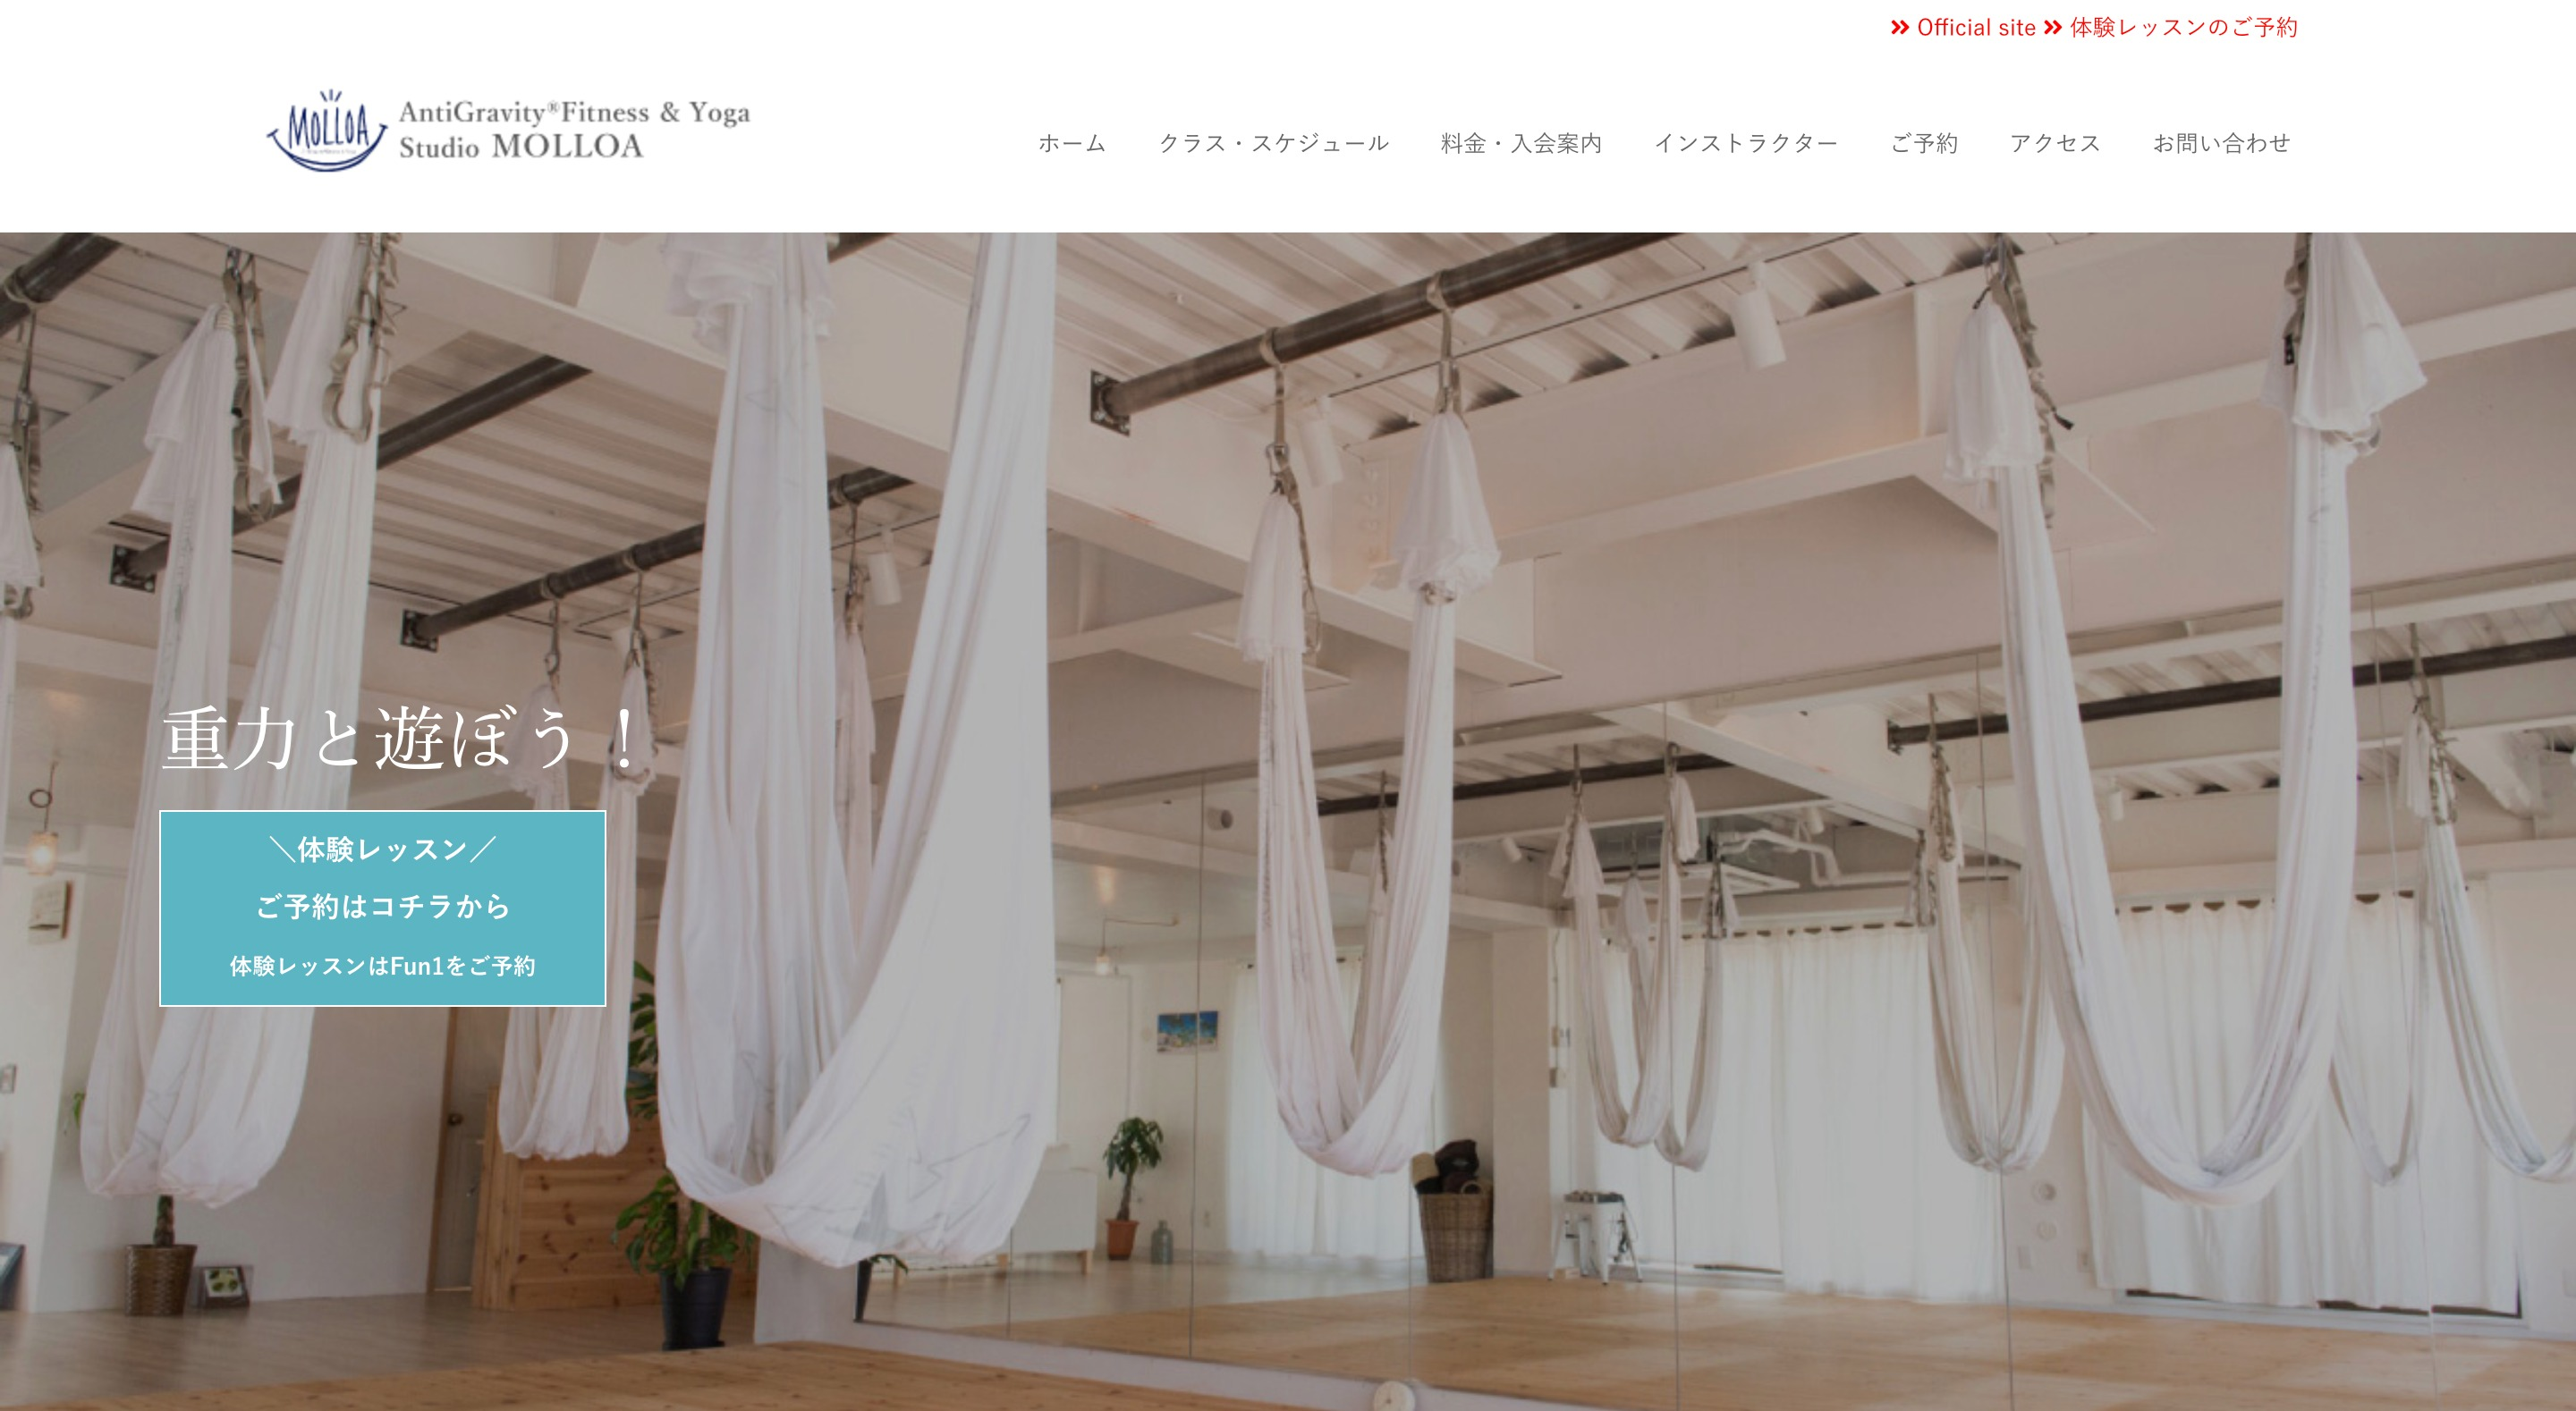 AntiGravity®Finess & Yoga Studio MOLLOA モロアの画像